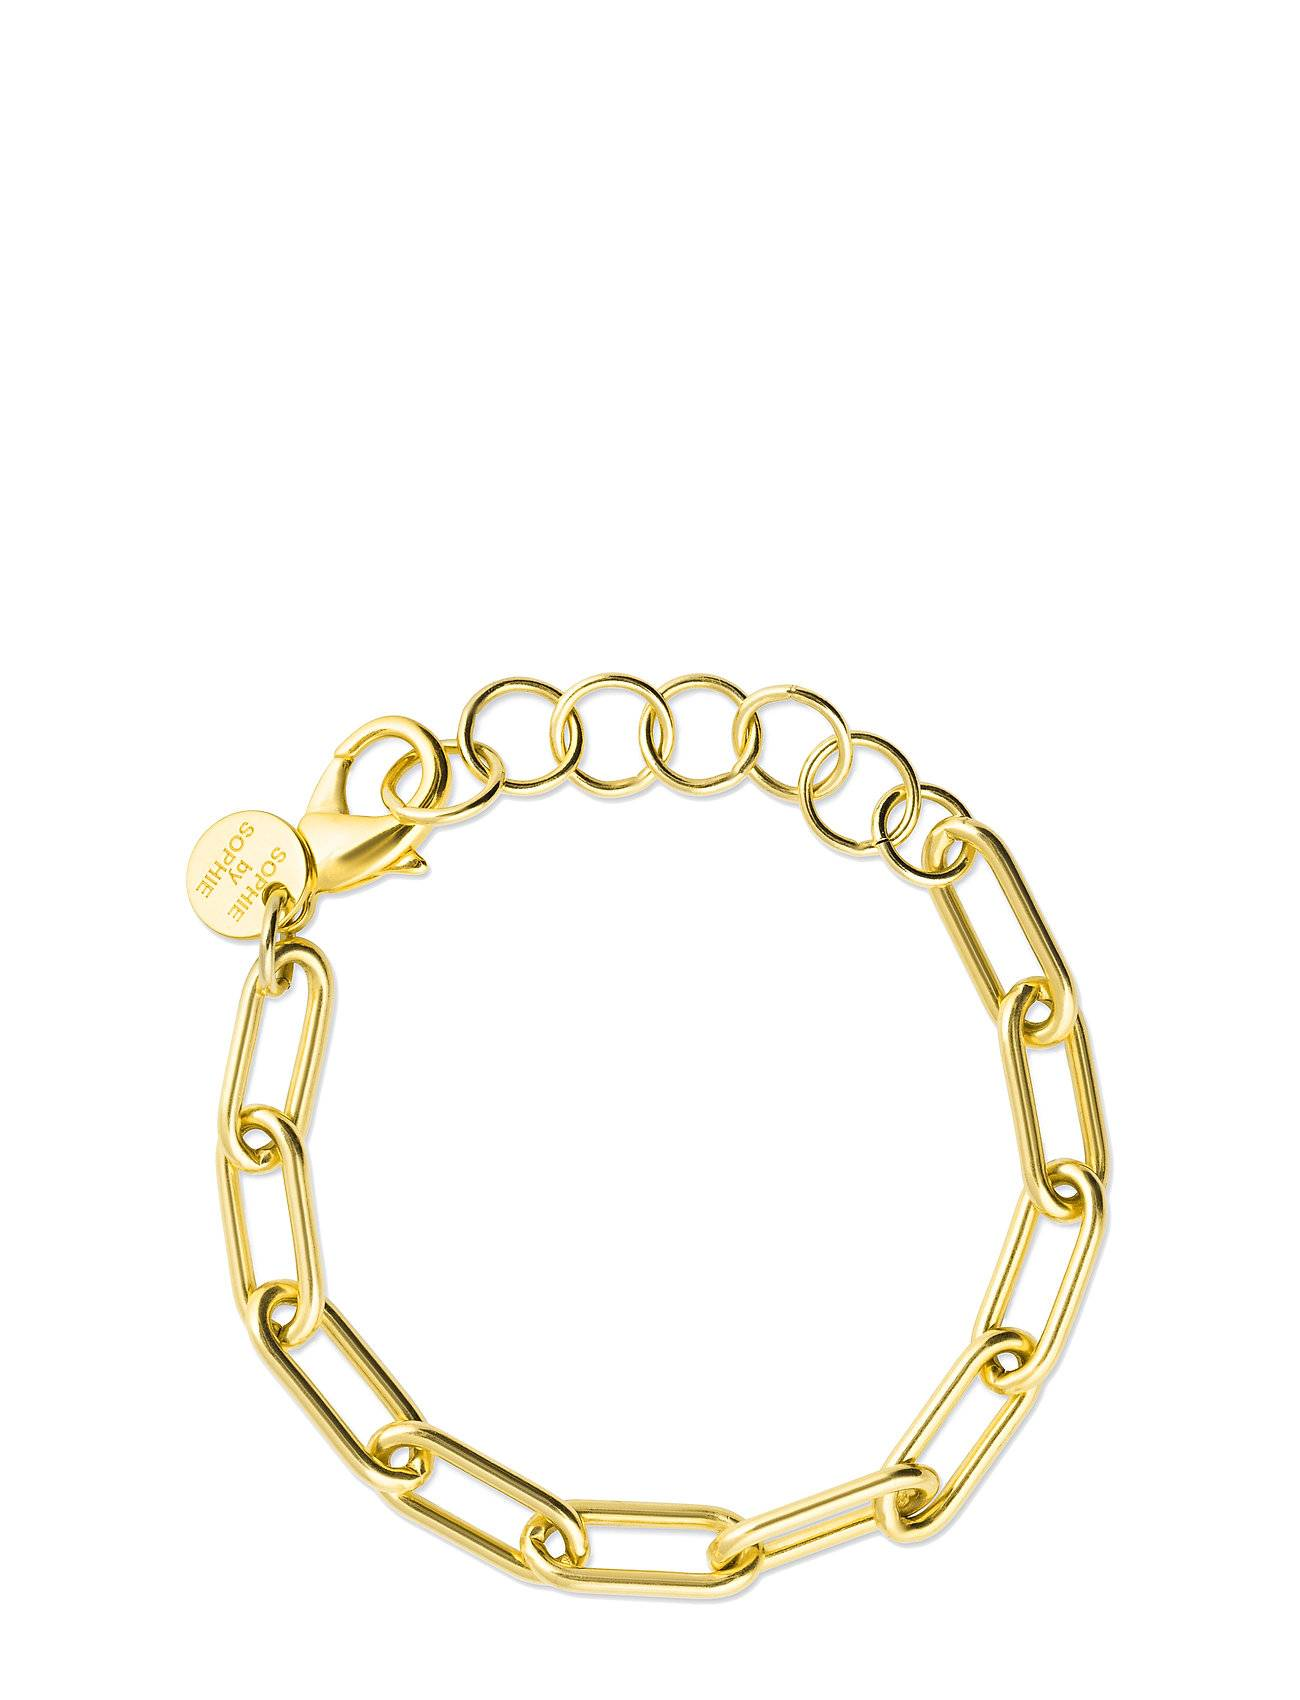 SOPHIE by SOPHIE Link Chain Bracelet Accessories Jewellery Bracelets Chain Bracelets Kulta SOPHIE By SOPHIE